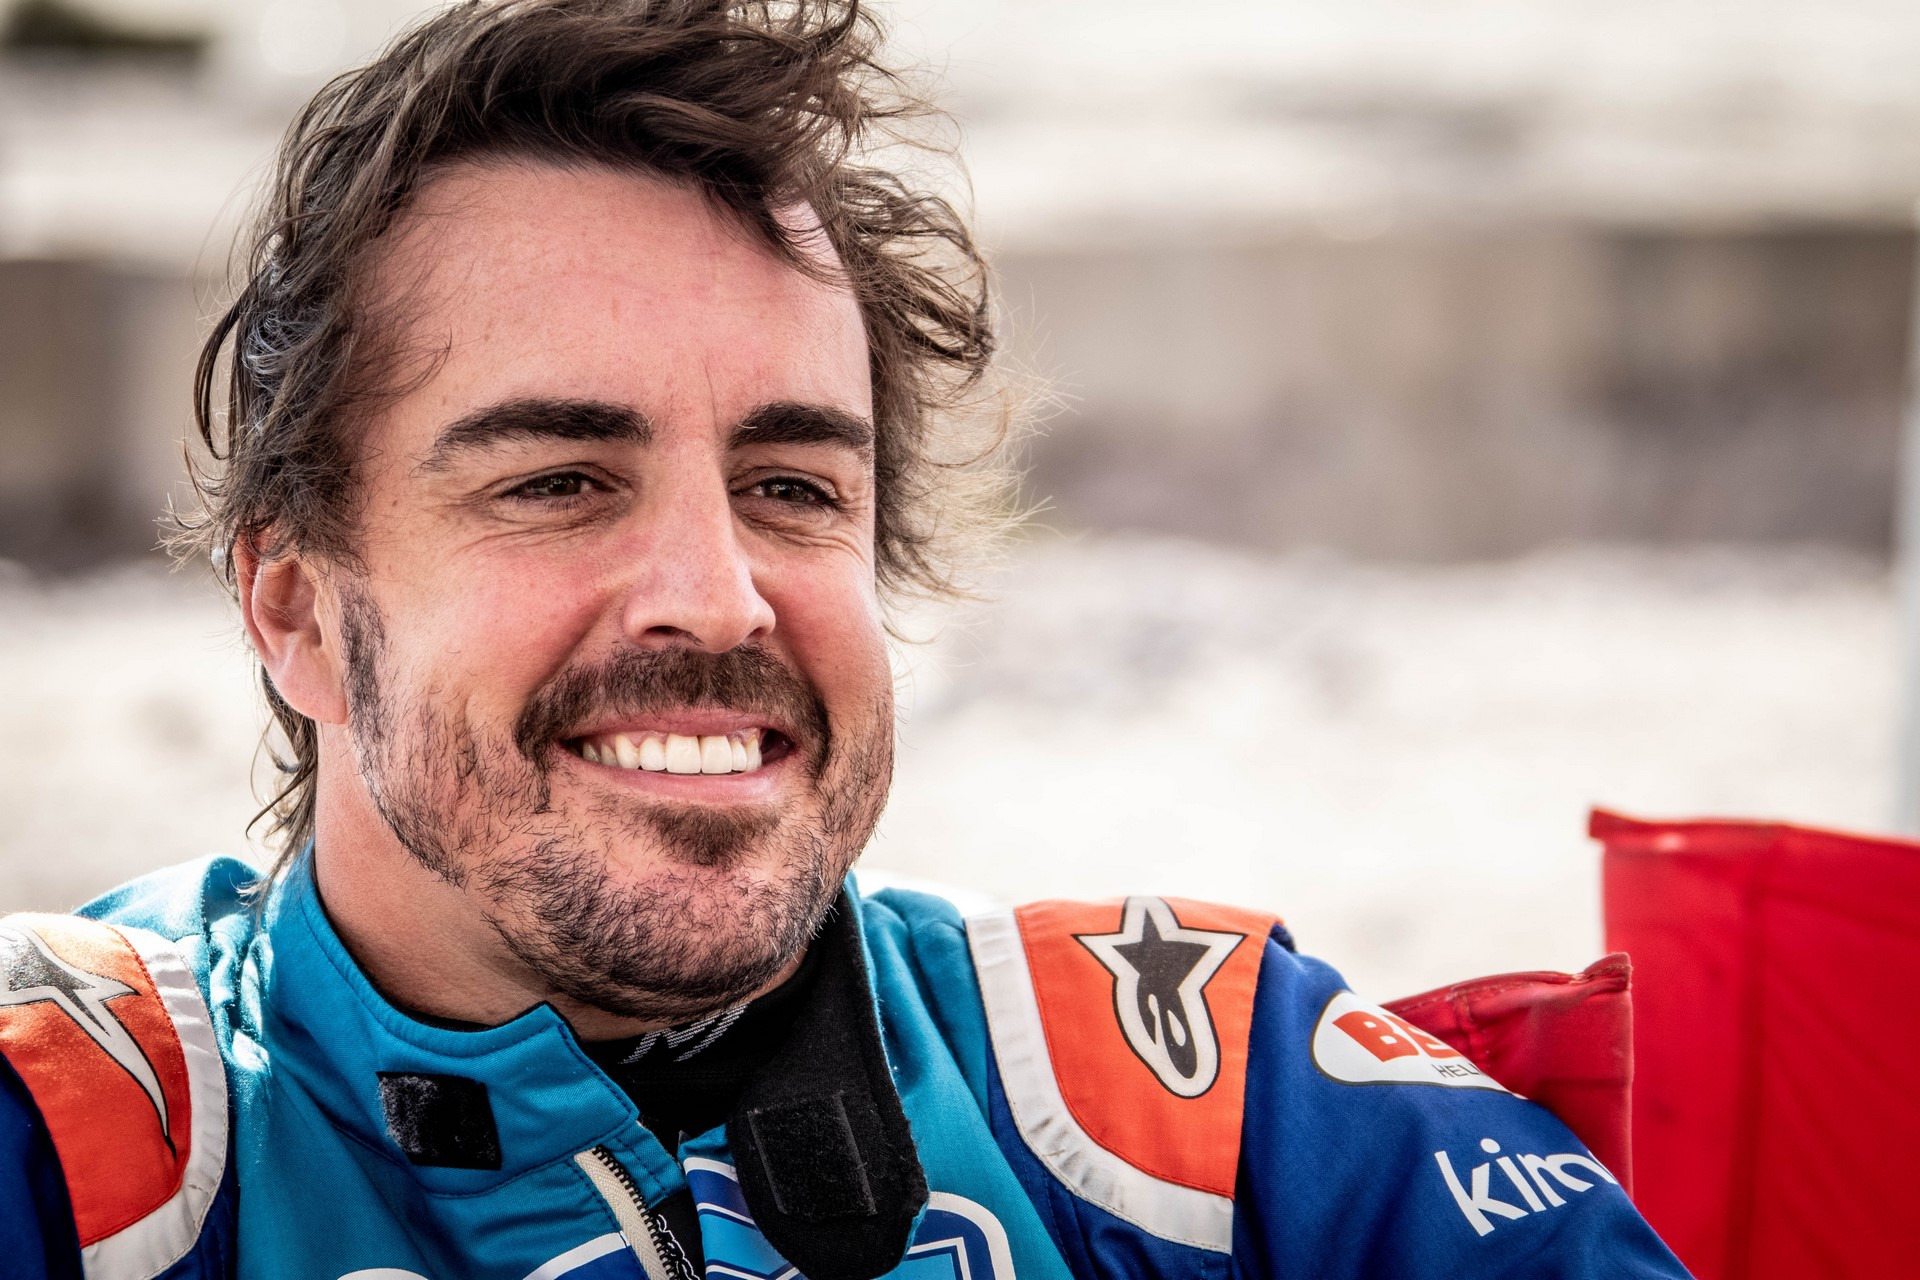 Fernando-Alonso-Training-Namibian-desert-4